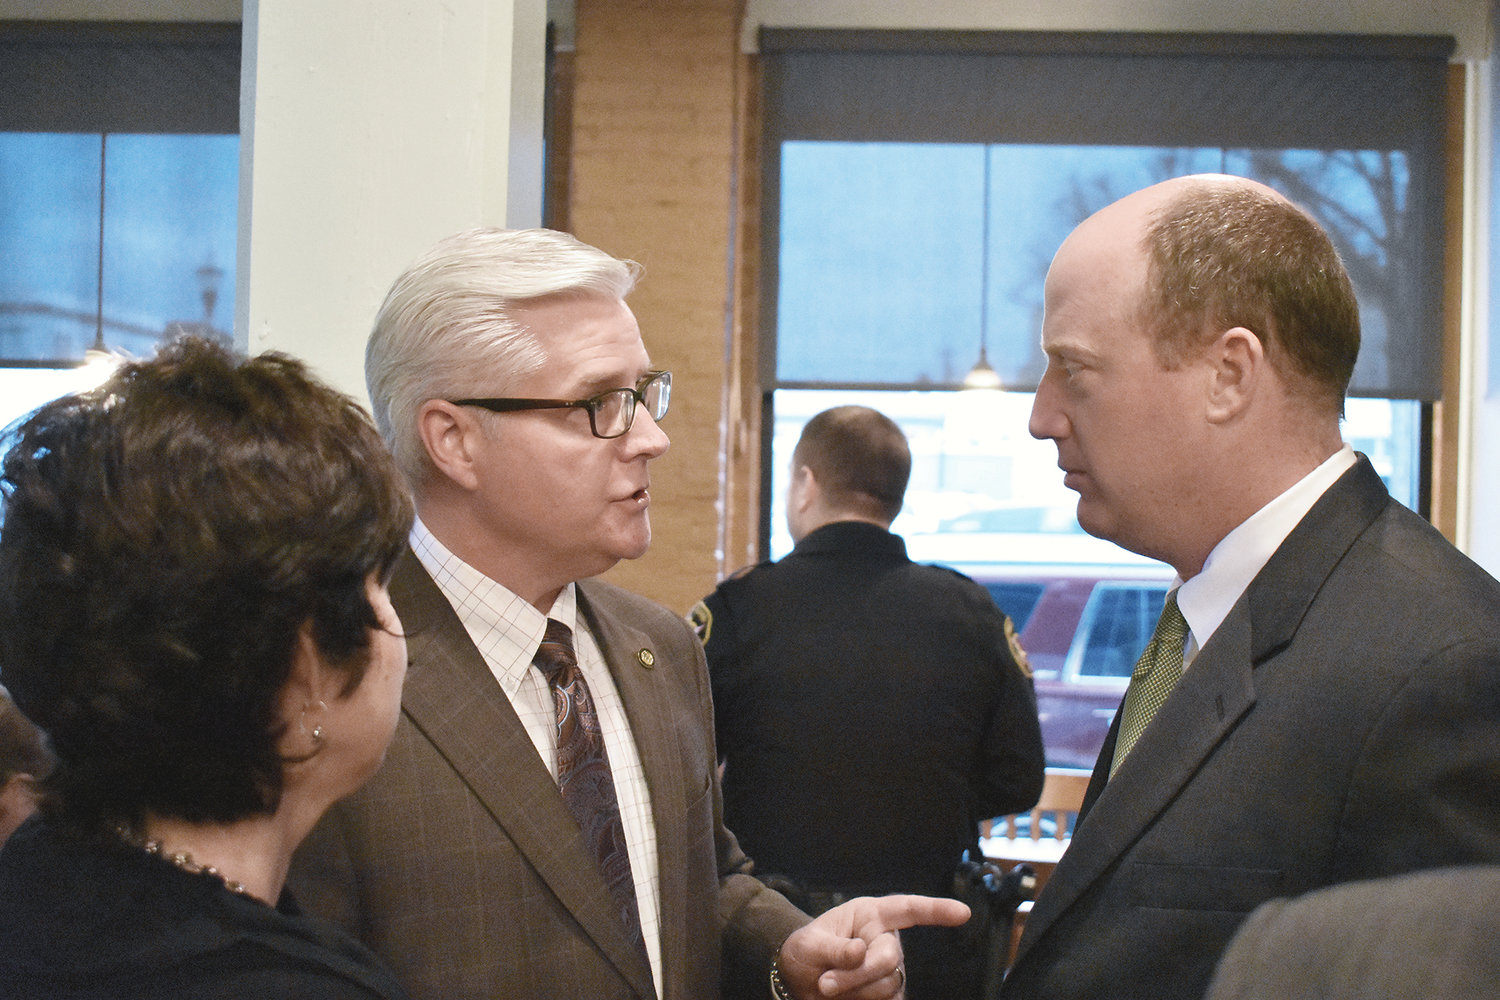 Senate Majority Leader Greg Reed, R-Jasper, left and Lt. Gov. Will Ainsworth share a moment at a Jasper Main Street reception on Tuesday.